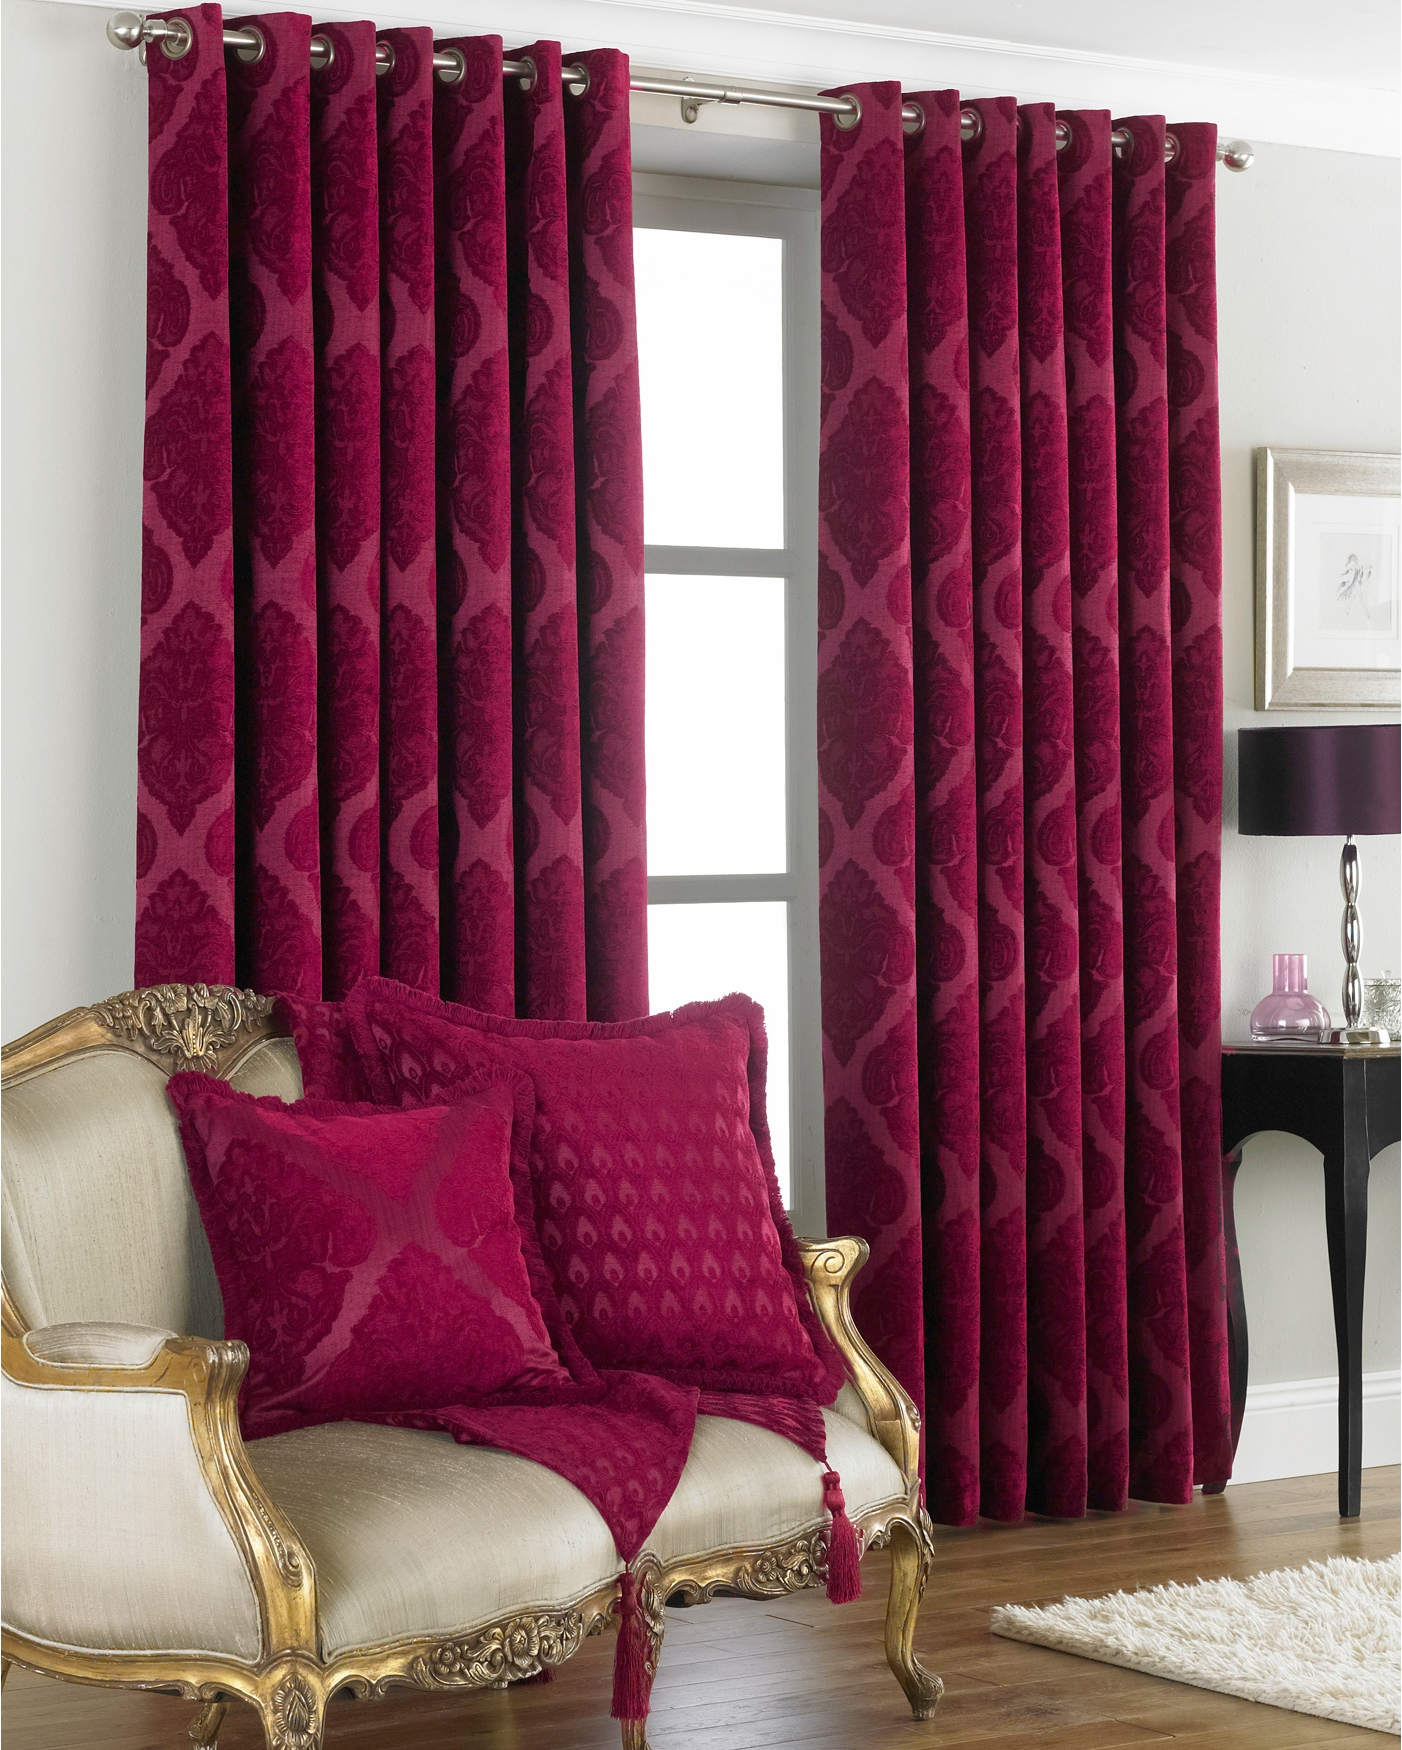 Riva home winchester ringtop curtains available now at market